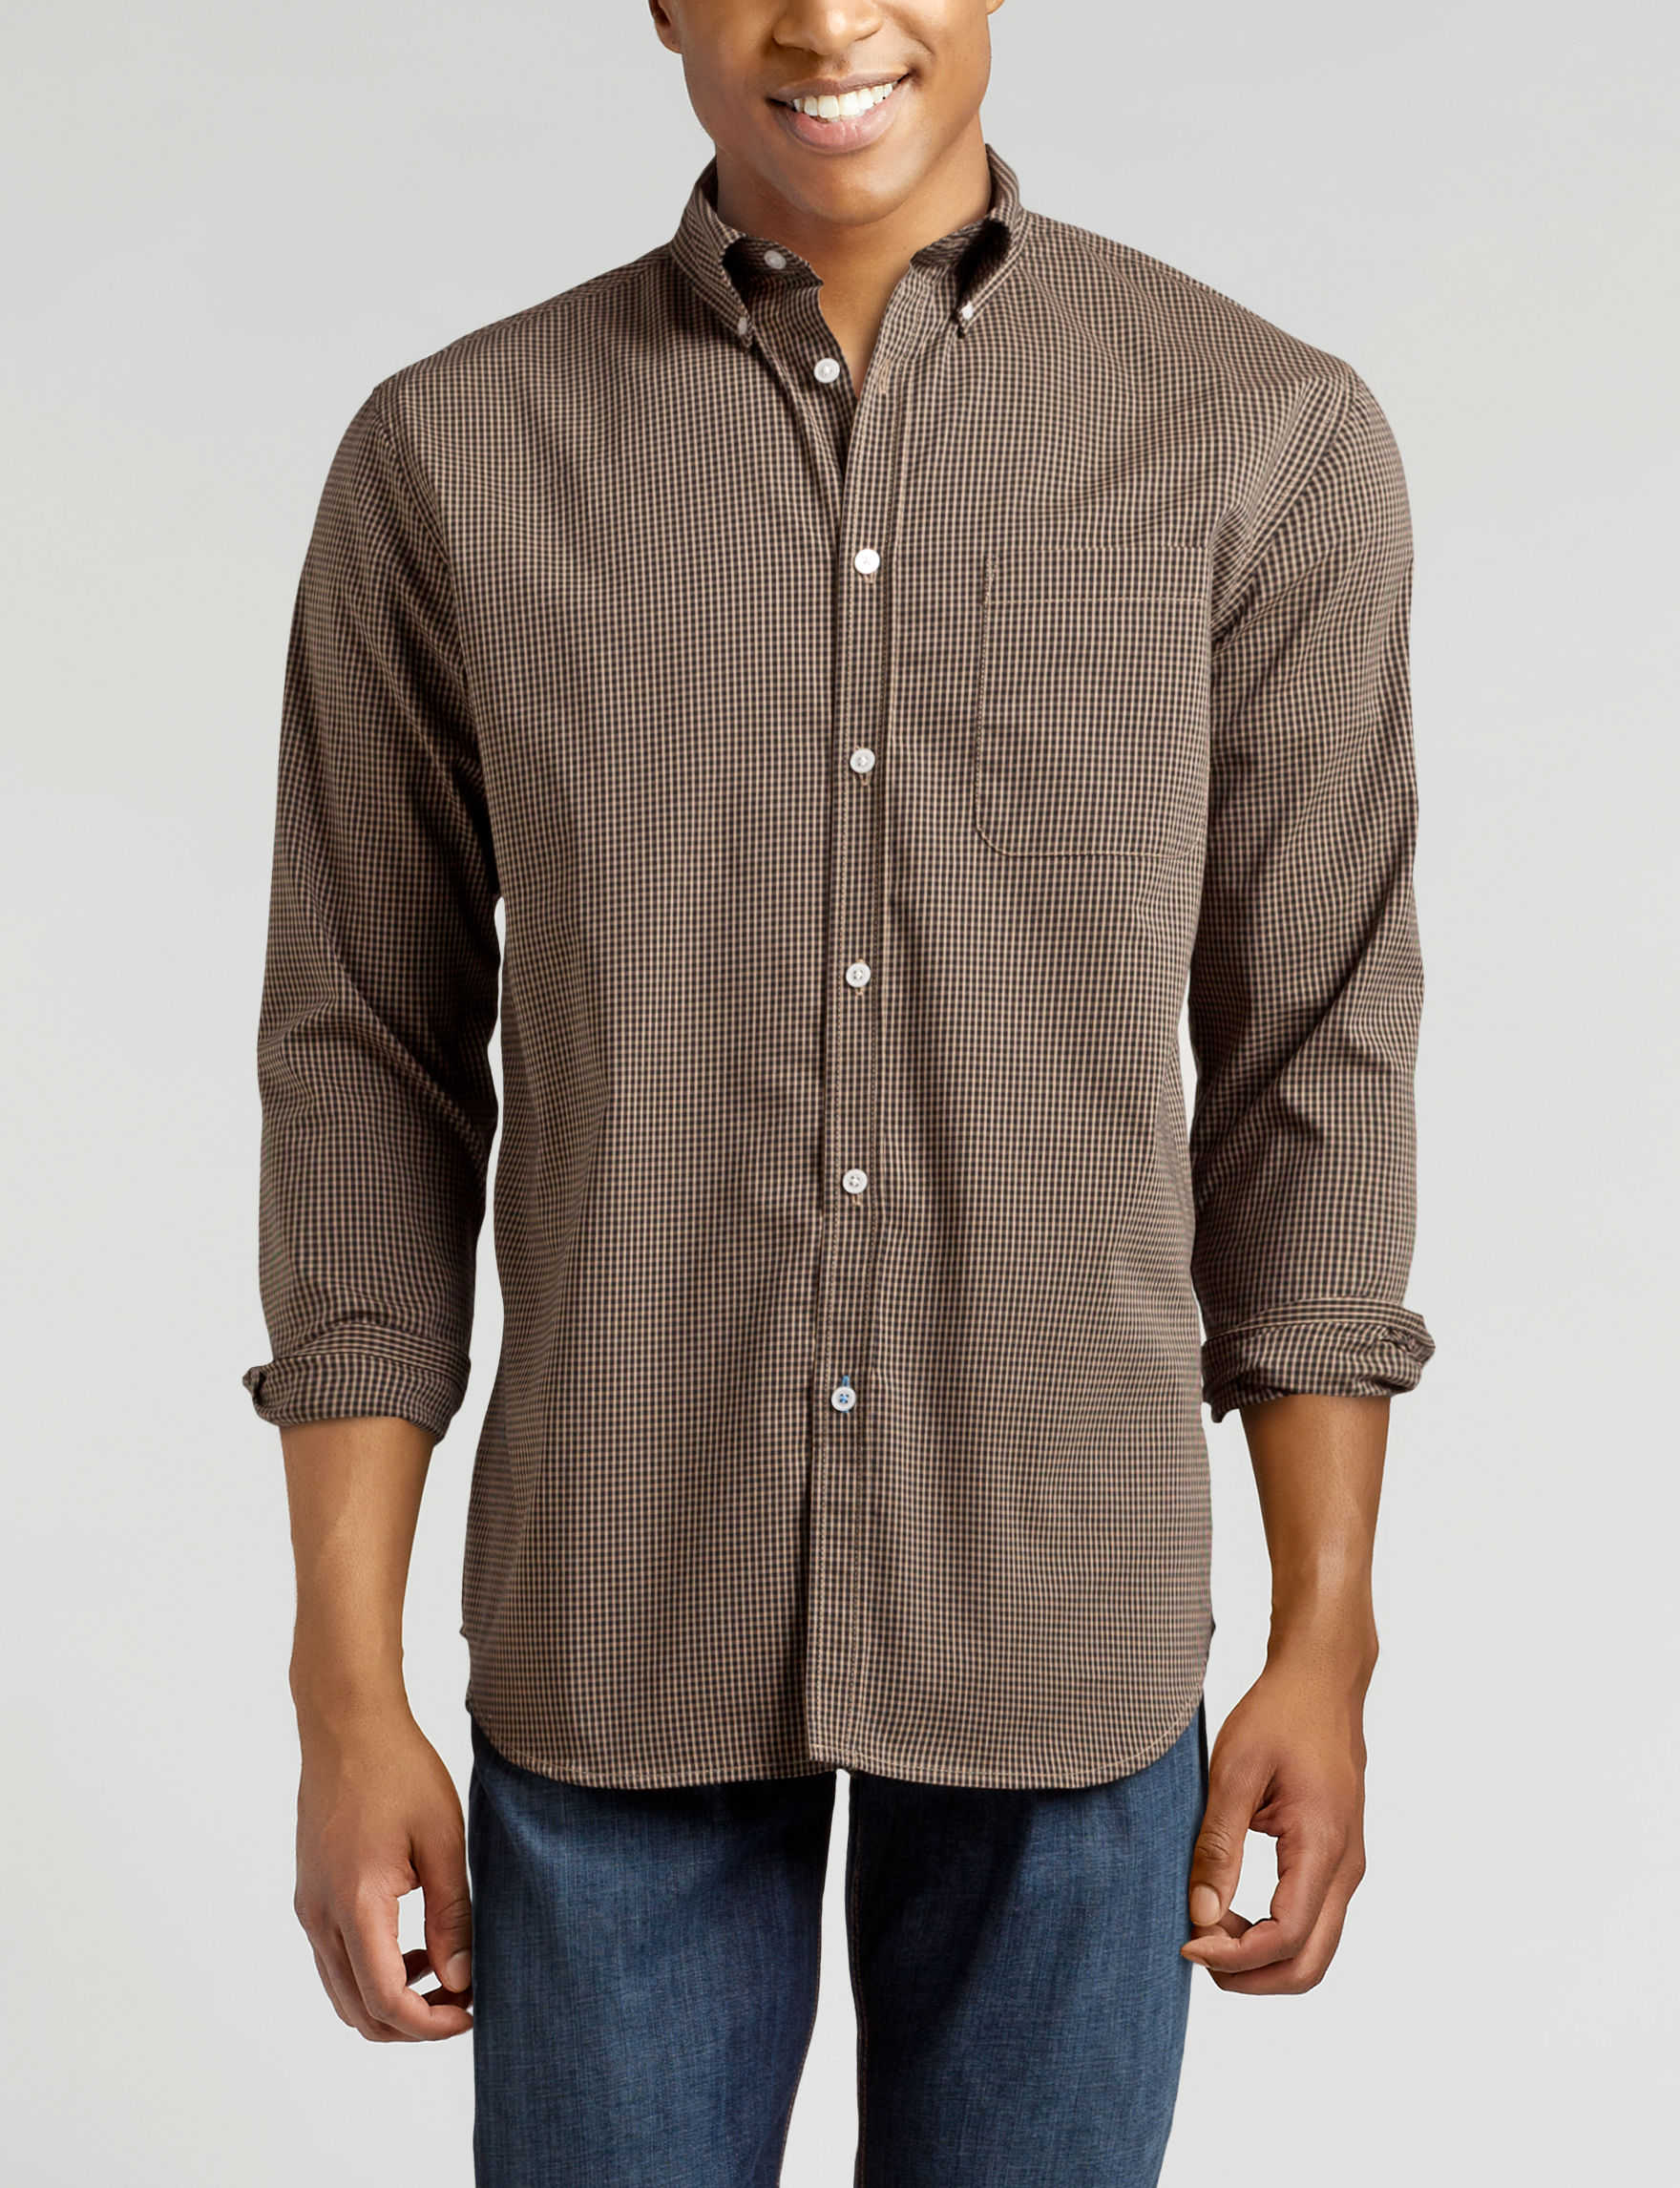 Sun River Khaki Casual Button Down Shirts